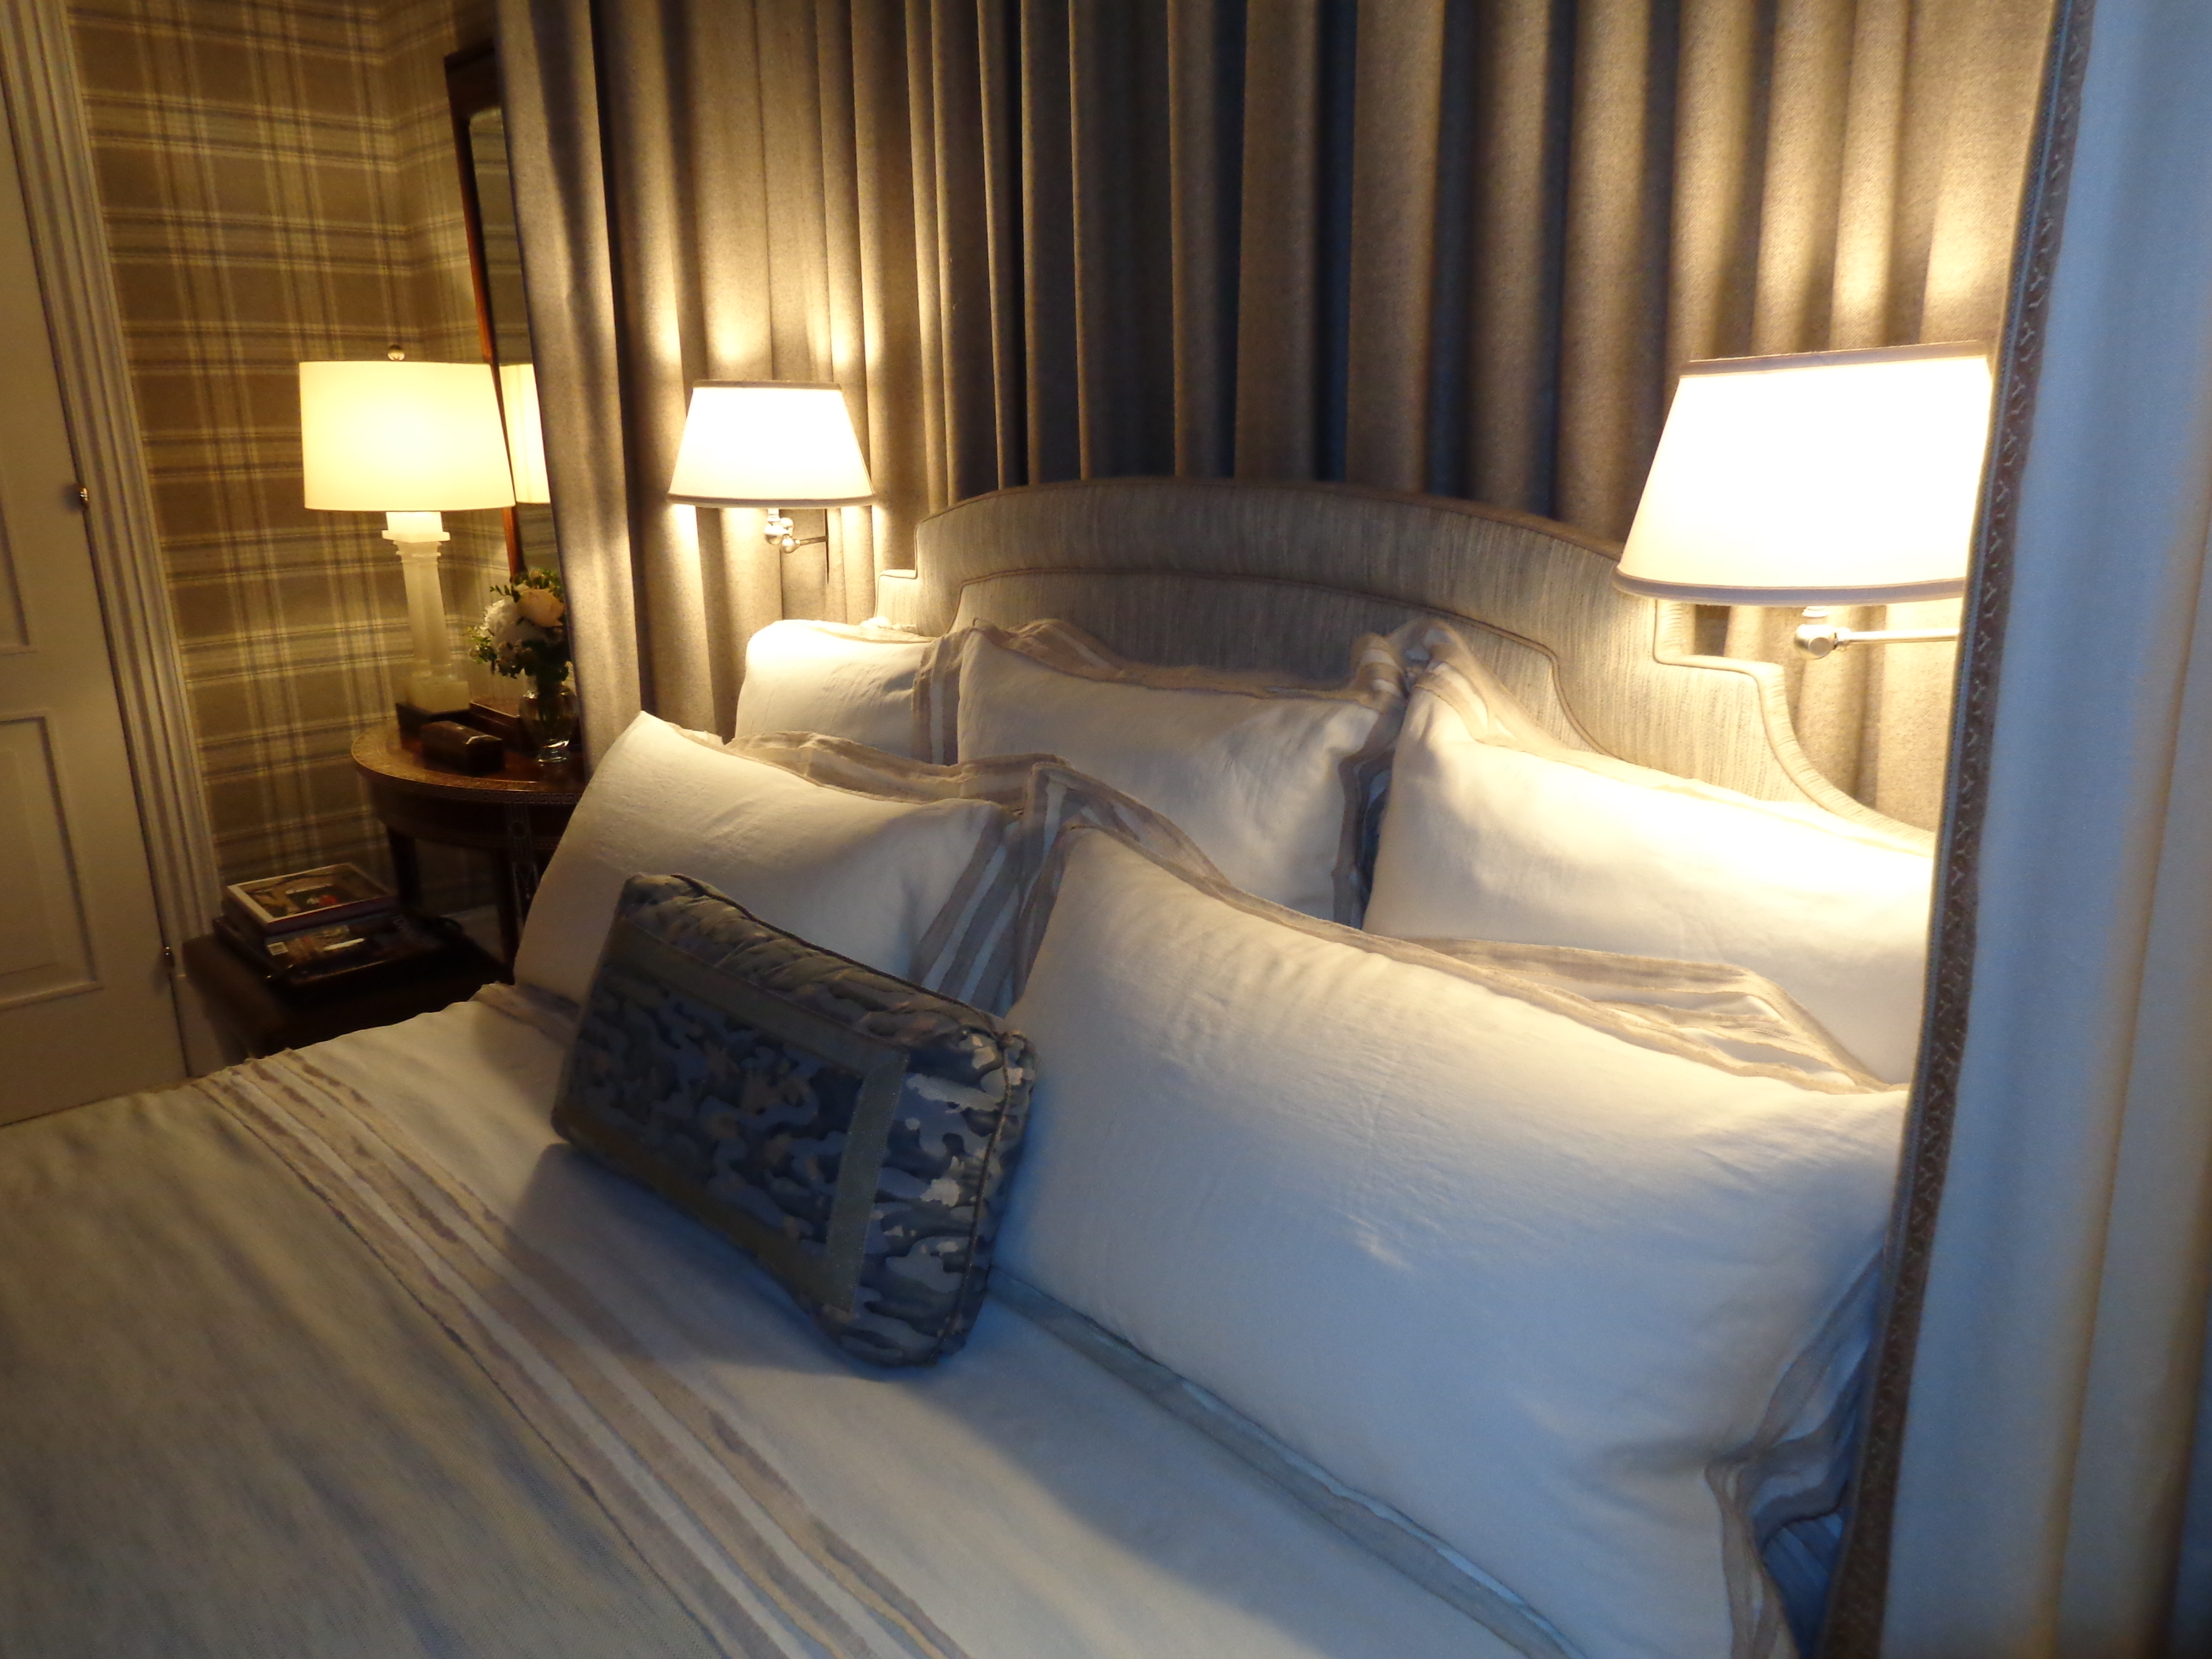 Kips Bay Show House CASTLE AND CLIFF BLOG - Clive christian bedroom furniture